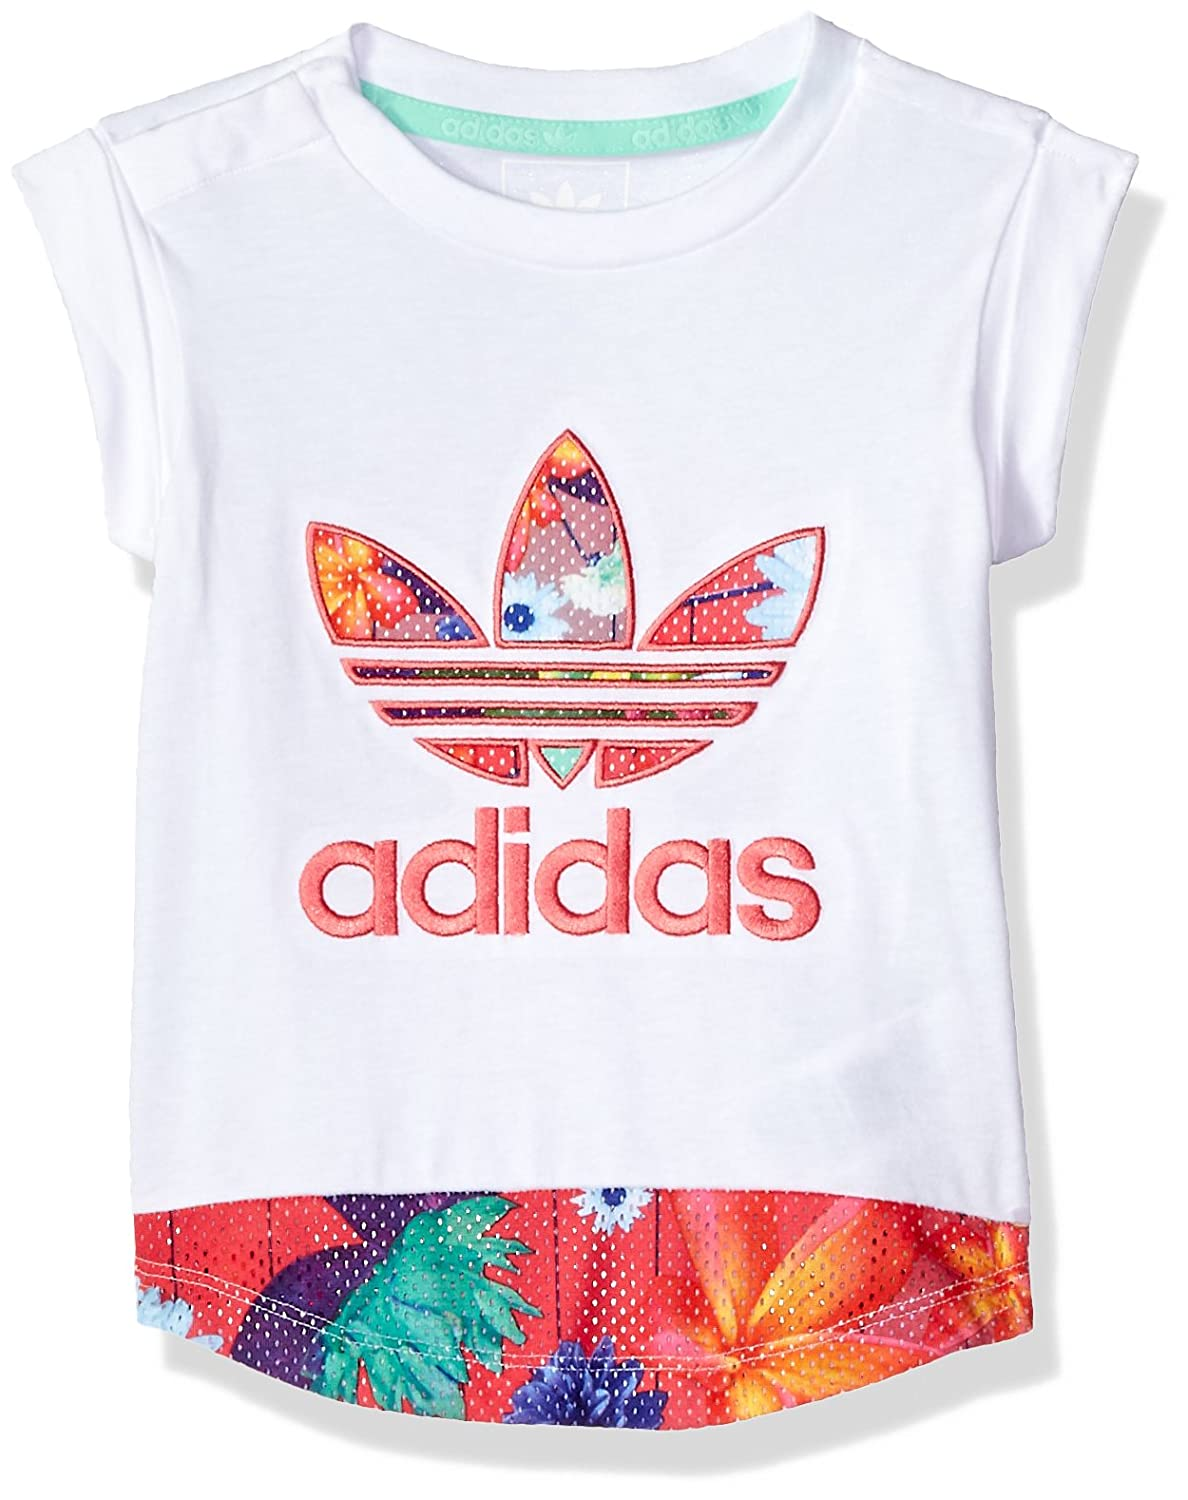 07c399fcf Top1: adidas Originals Baby Girls Originals Floral Graphic Tee